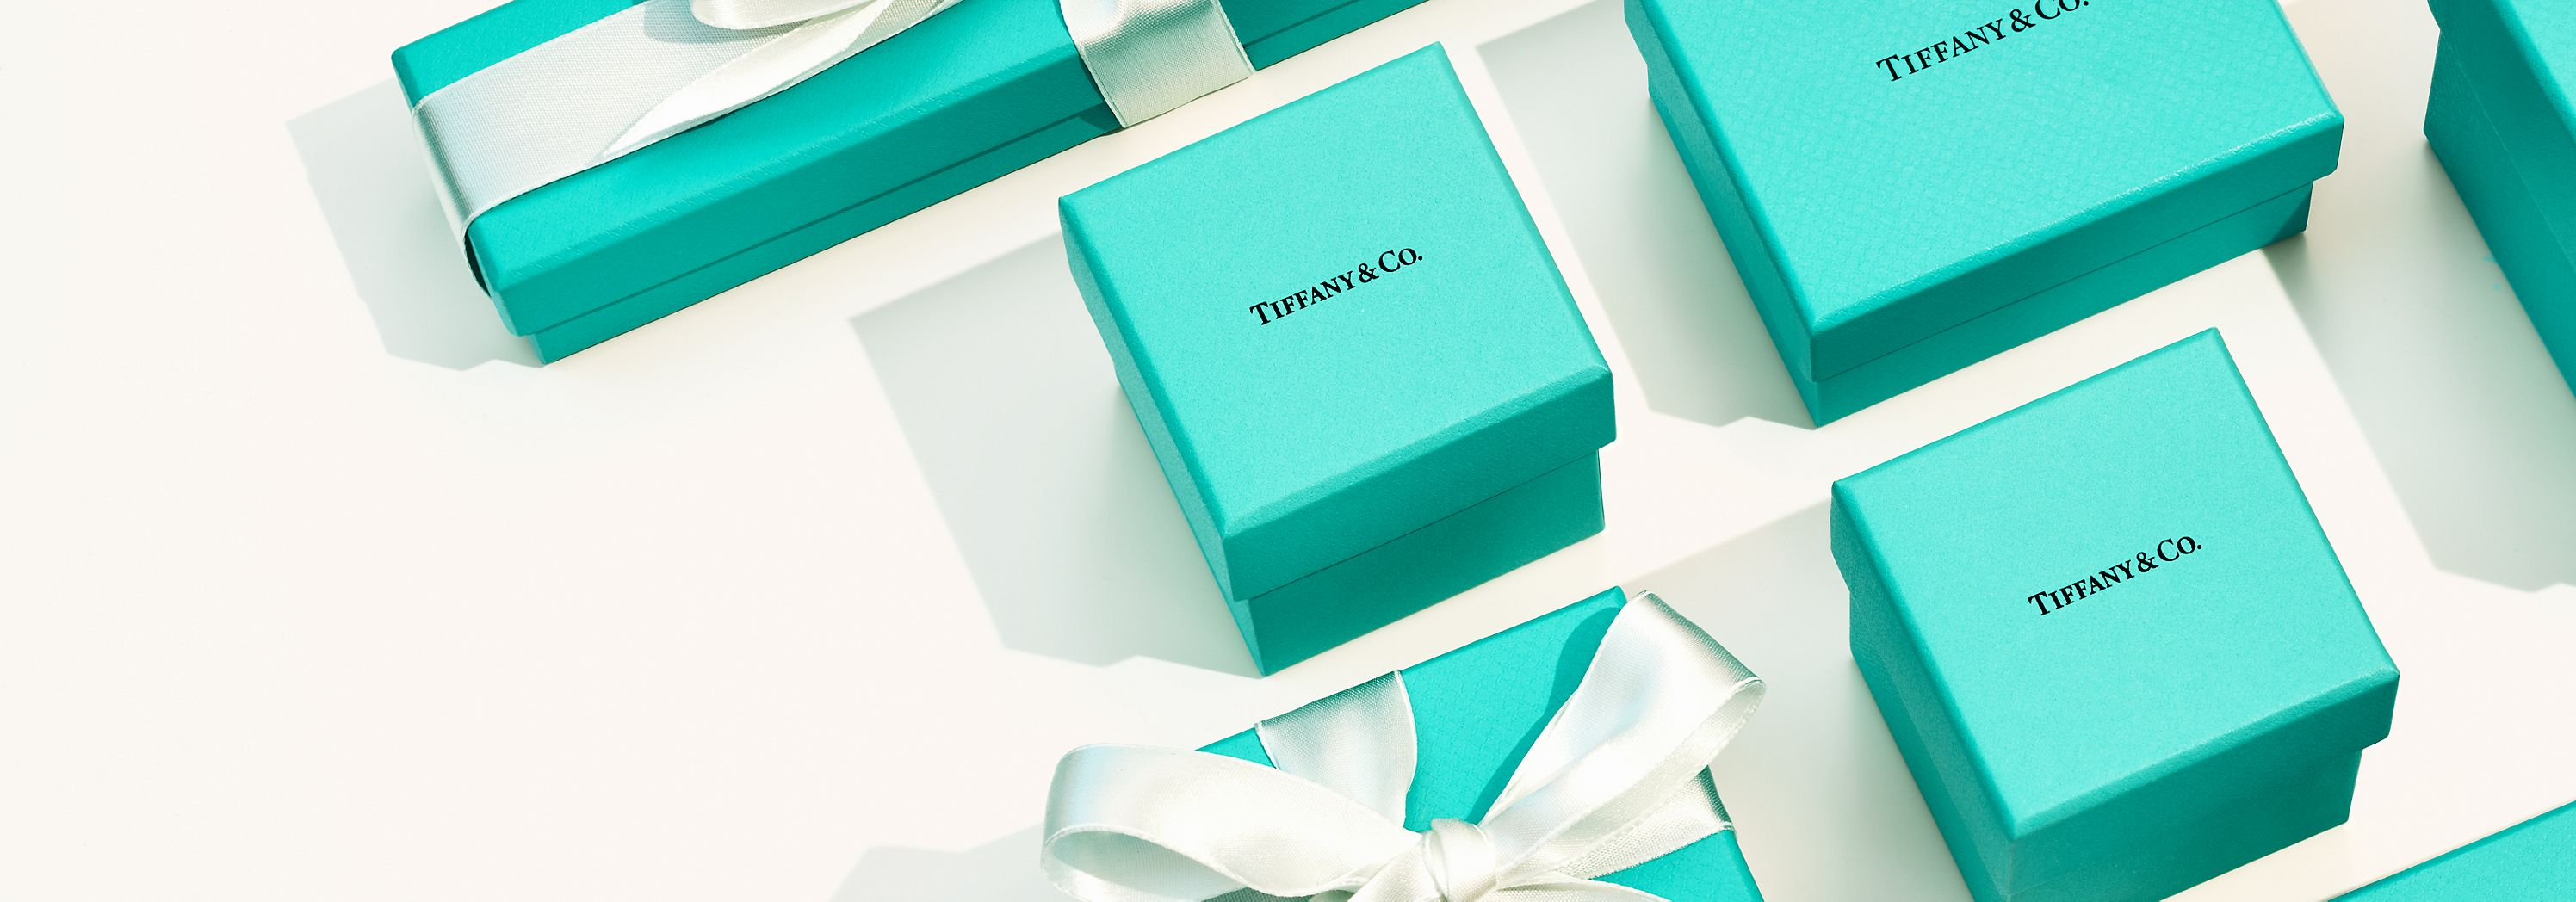 d05b257a421e4 Luxury Gifts | Present The Iconic Blue Box | Tiffany & Co.